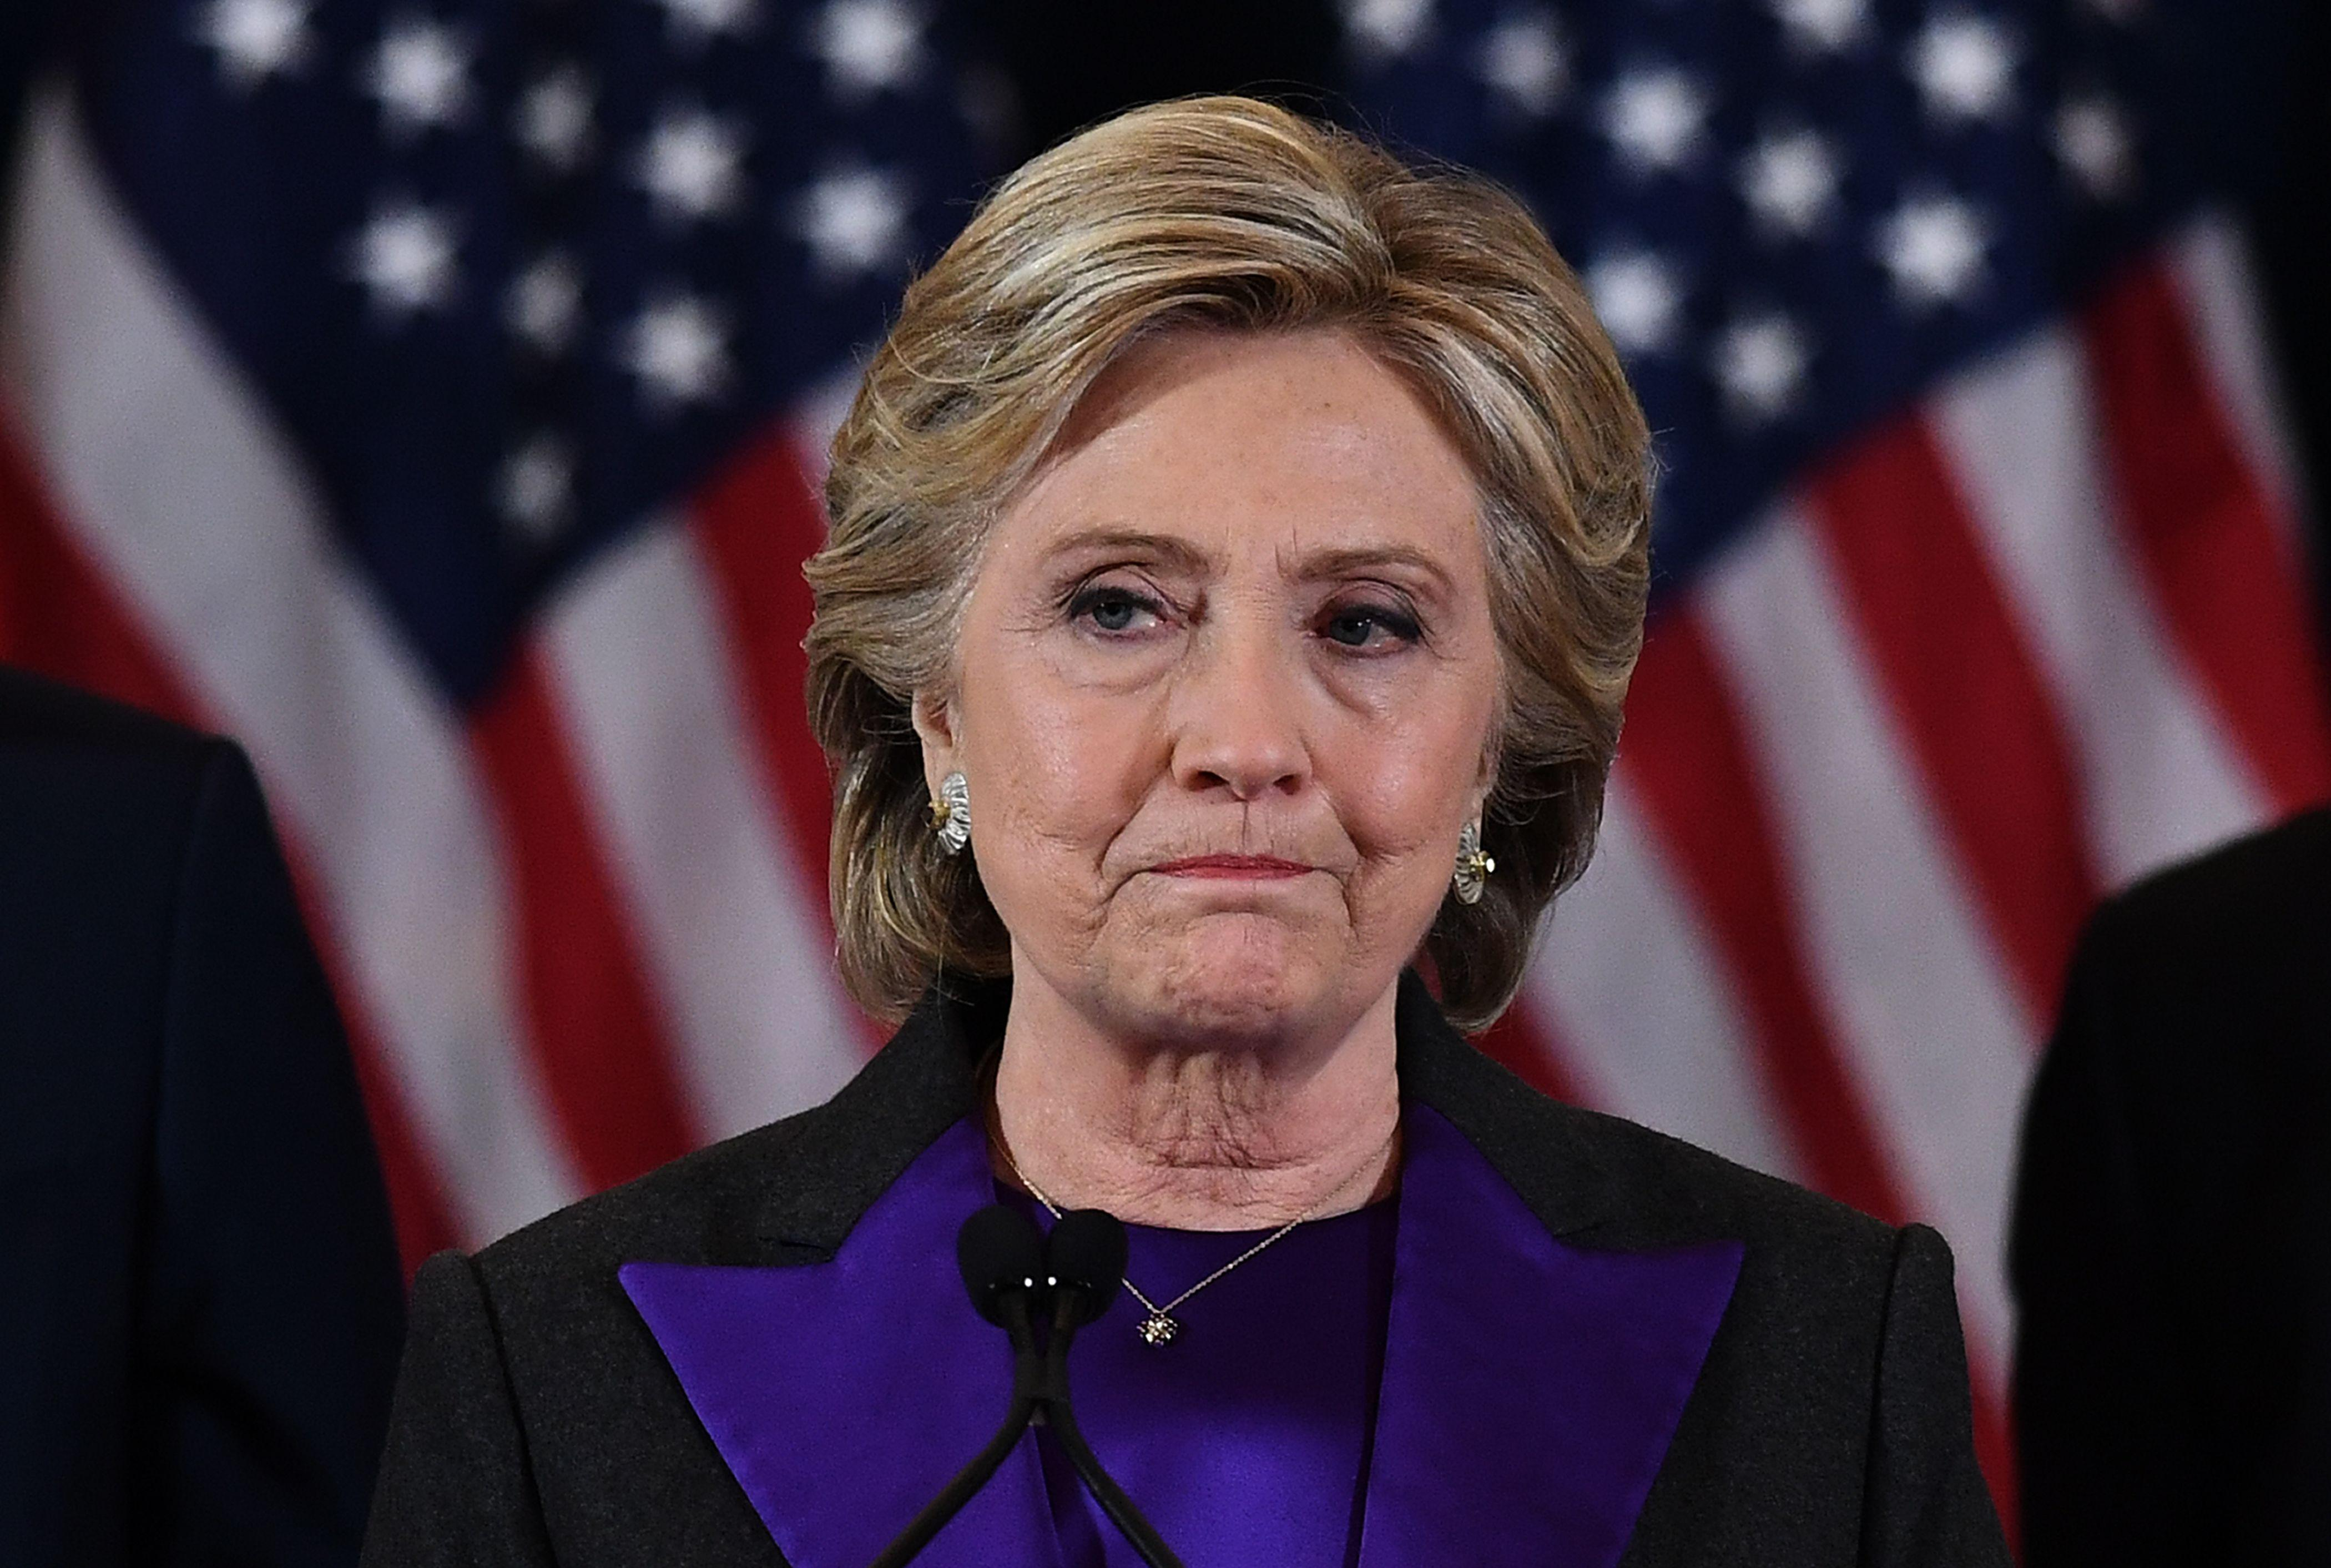 Hillary Clinton makes a concession speech after being defeated by Donald Trump in New York on Nov. 9, 2016.